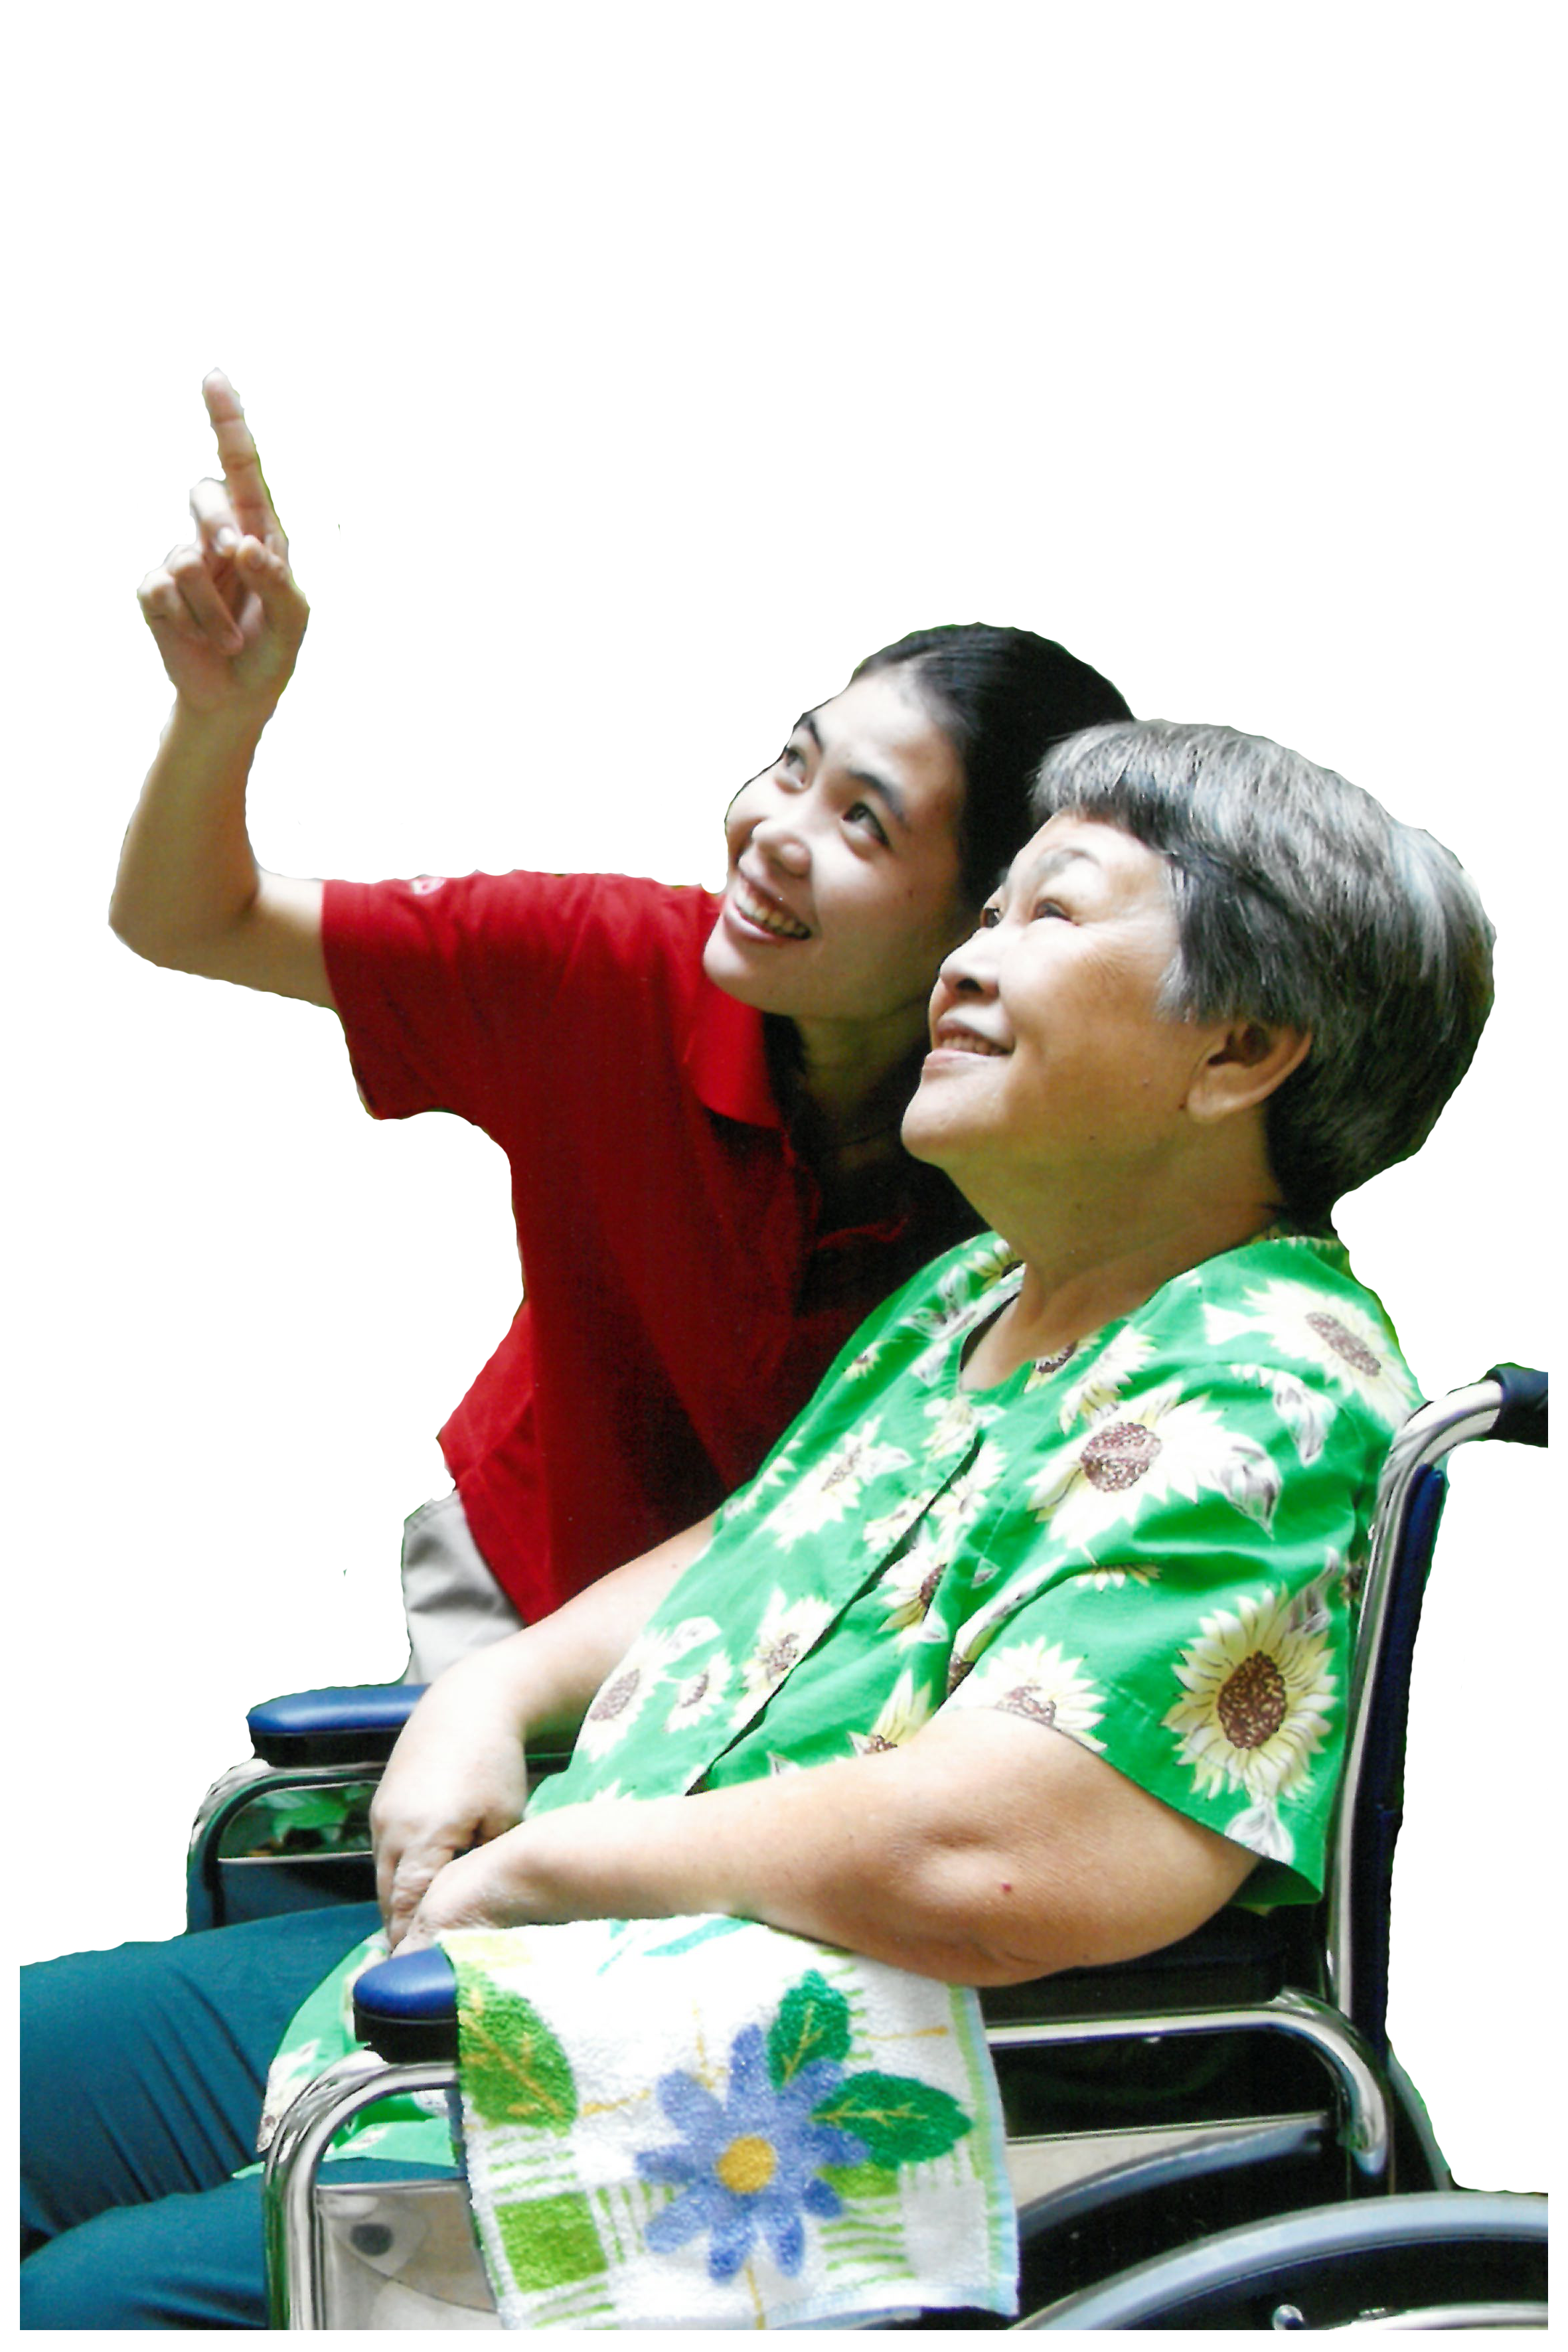 elderly care, old age home singapore, elderly care